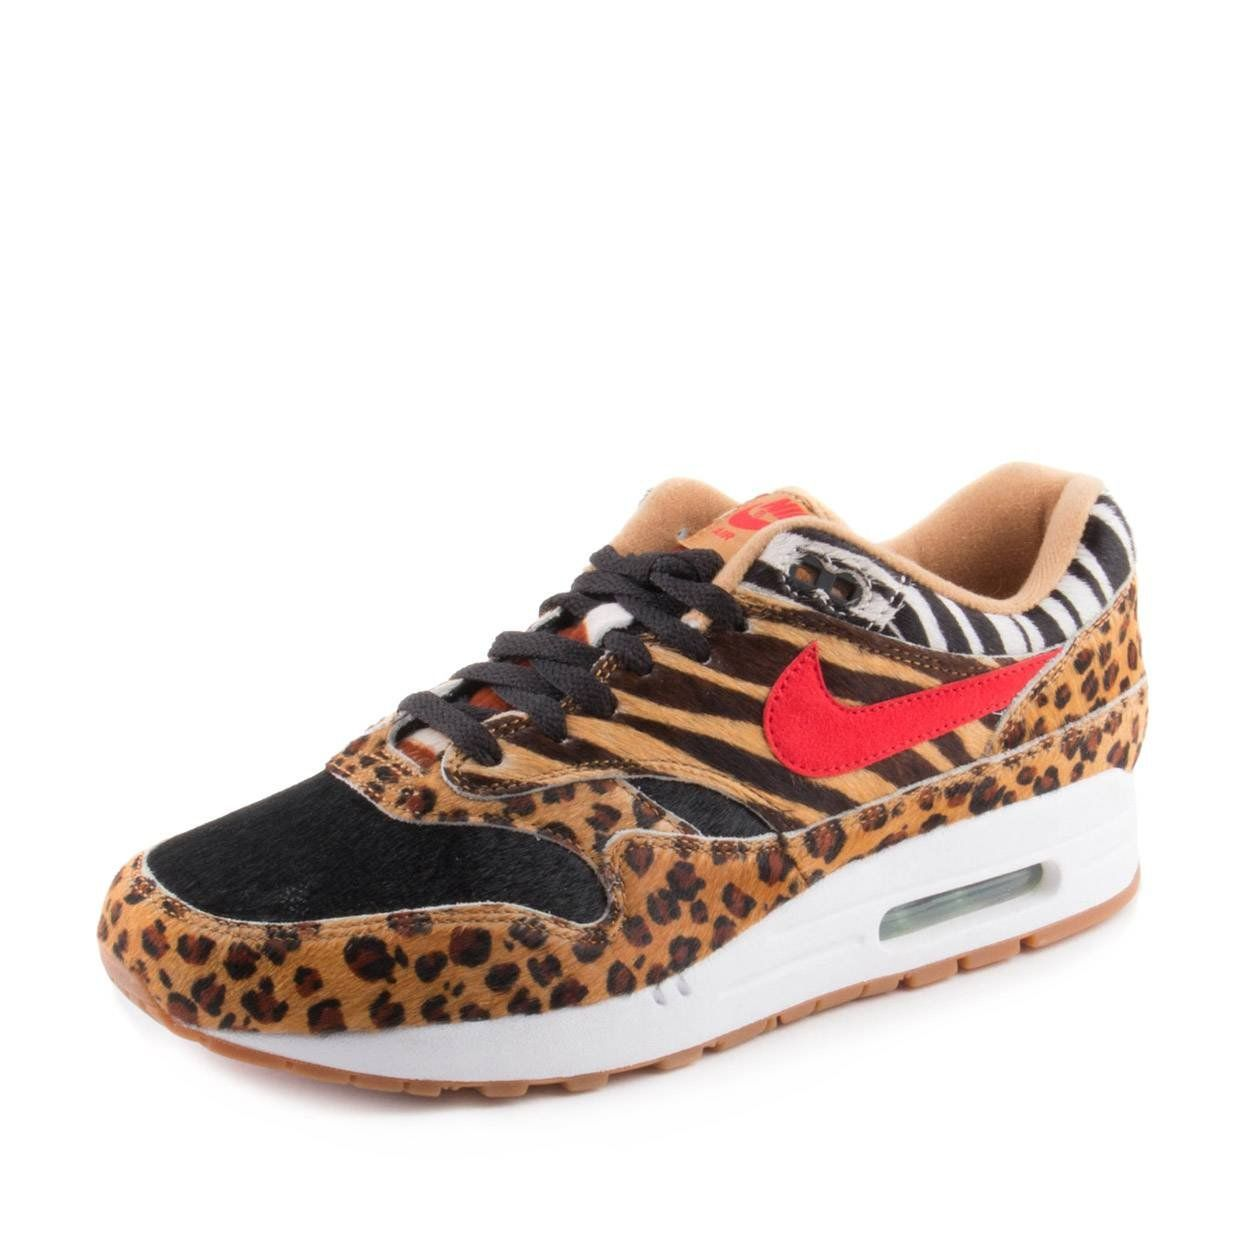 Golf Shoes     NIKE Mens Air Max 1 DLX Animal Pack Wheat RedBison Synthetic  Size 9.5 -- Learn more at the image web link. (This is an affiliate link). 5370ad45c